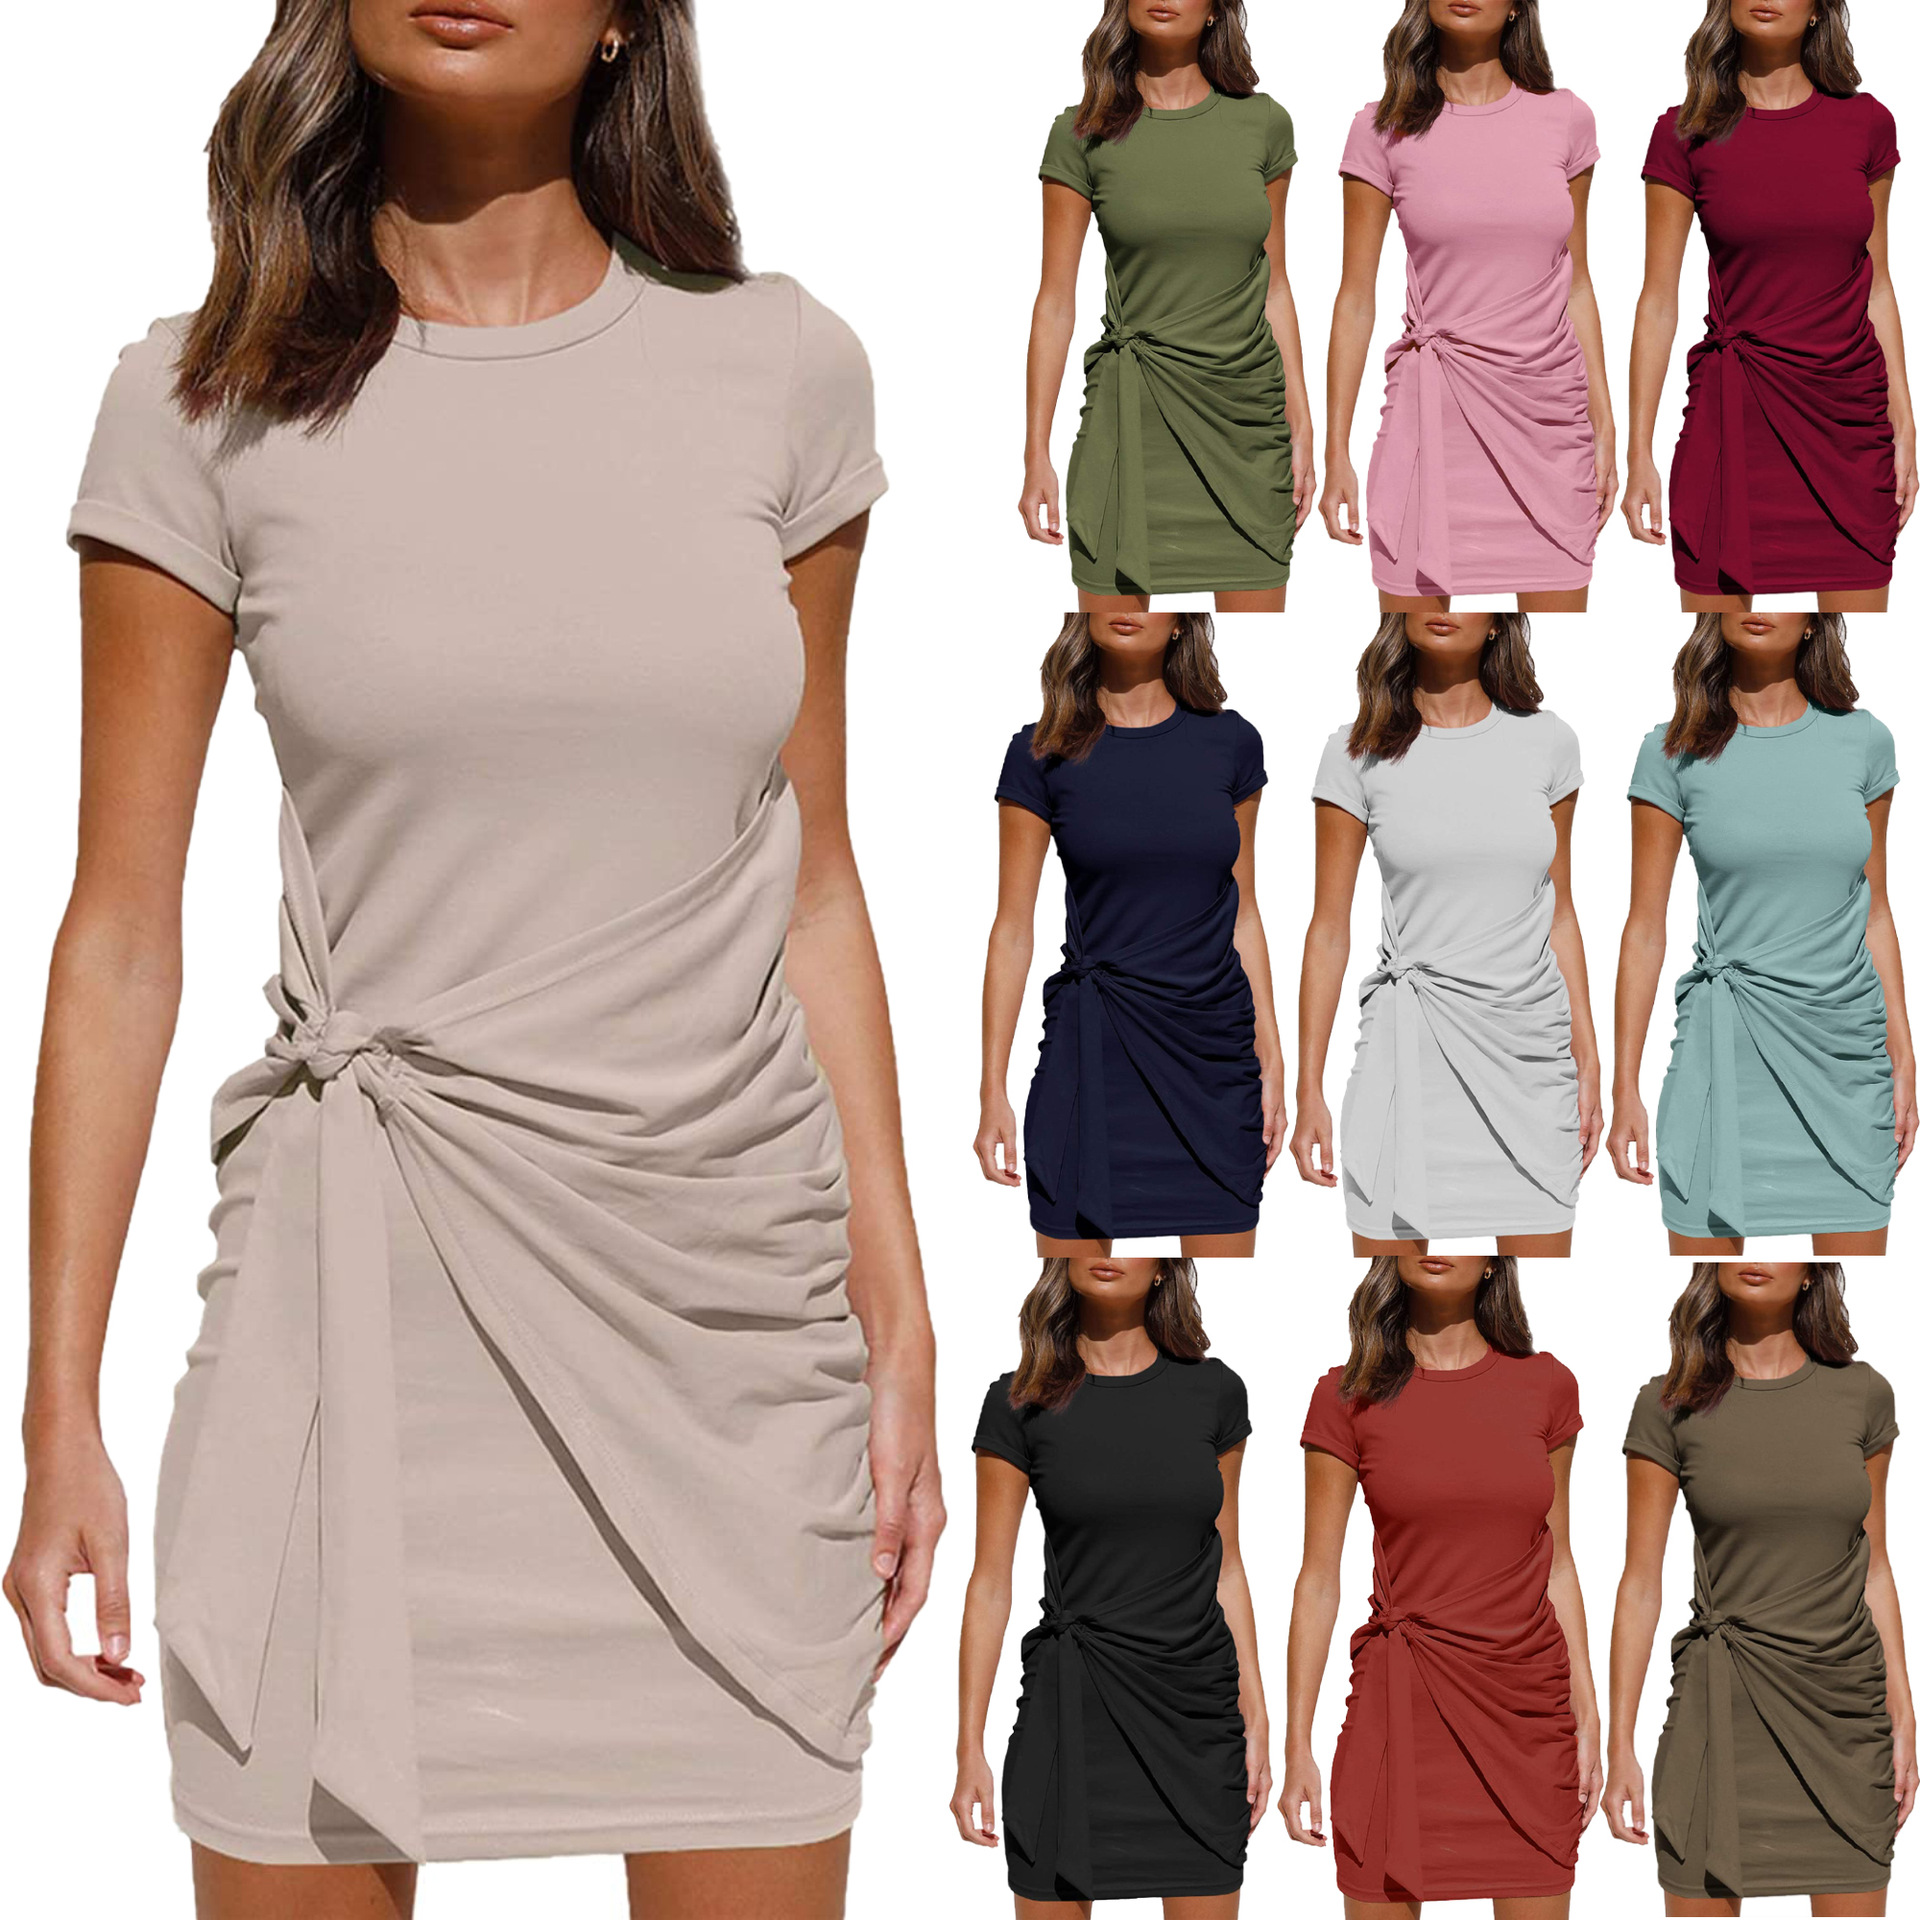 2021 spring and summer new women's knotted Short Sleeve Dress